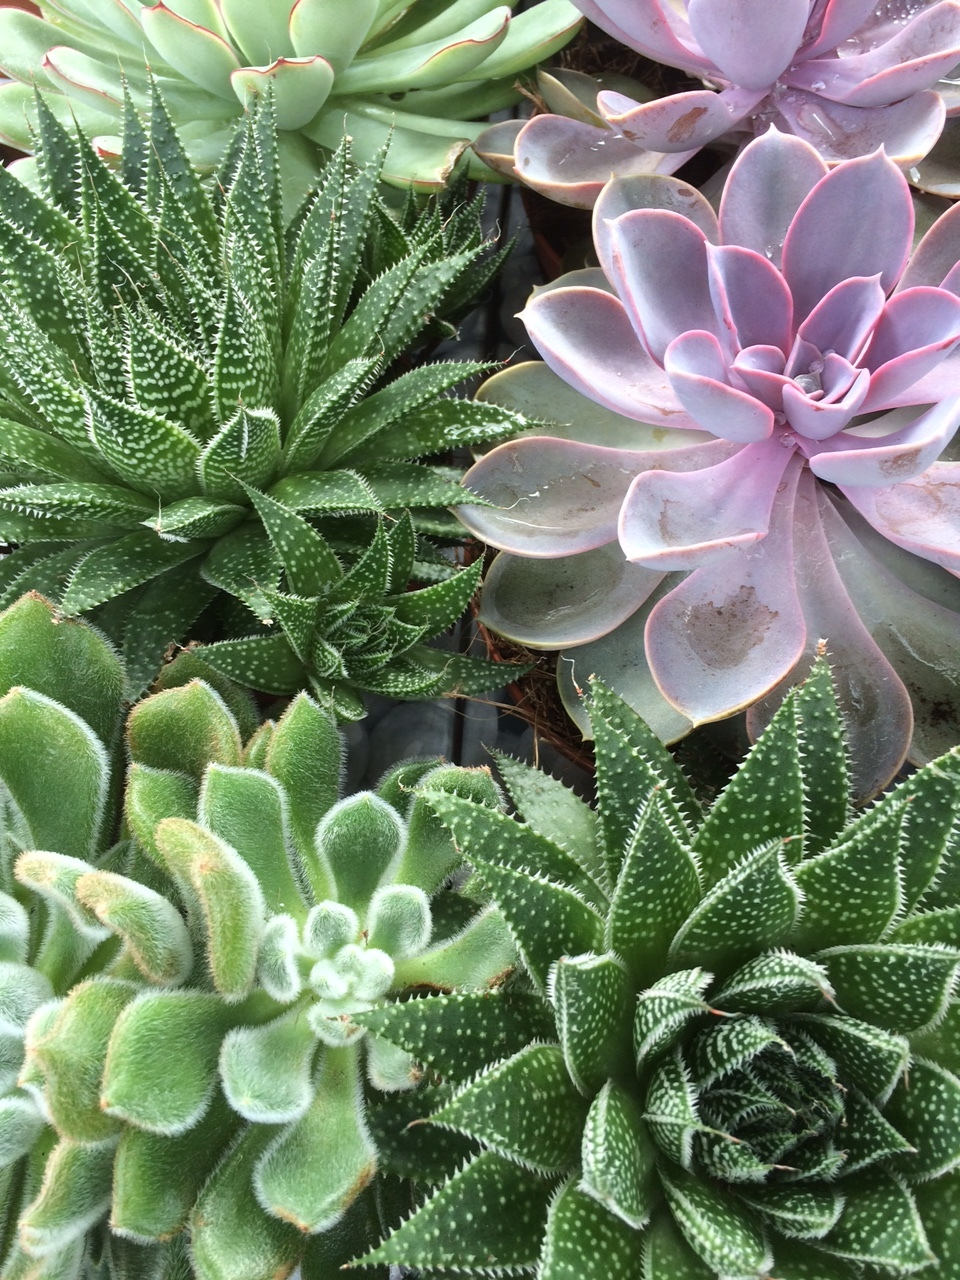 My husband doesn't like succulents but I'm planning on buying some up after seeing them at Sunset Farms, our favorite local nursery.